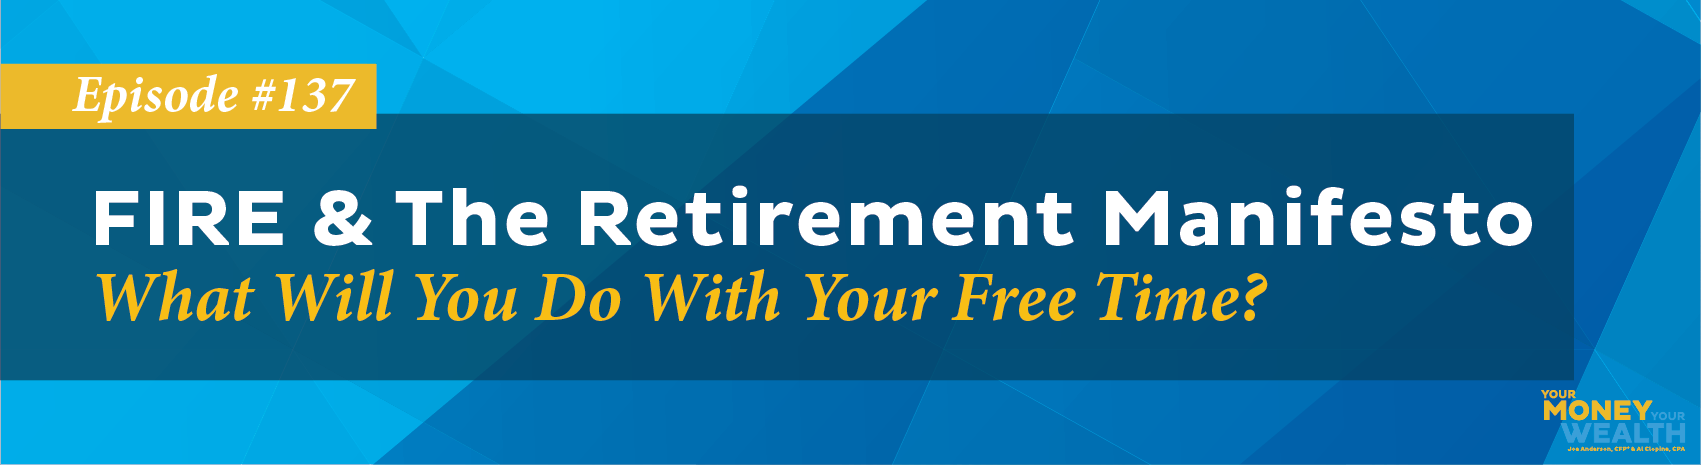 FIRE & The Retirement Manifesto: What Will You Do With Your Free Time?